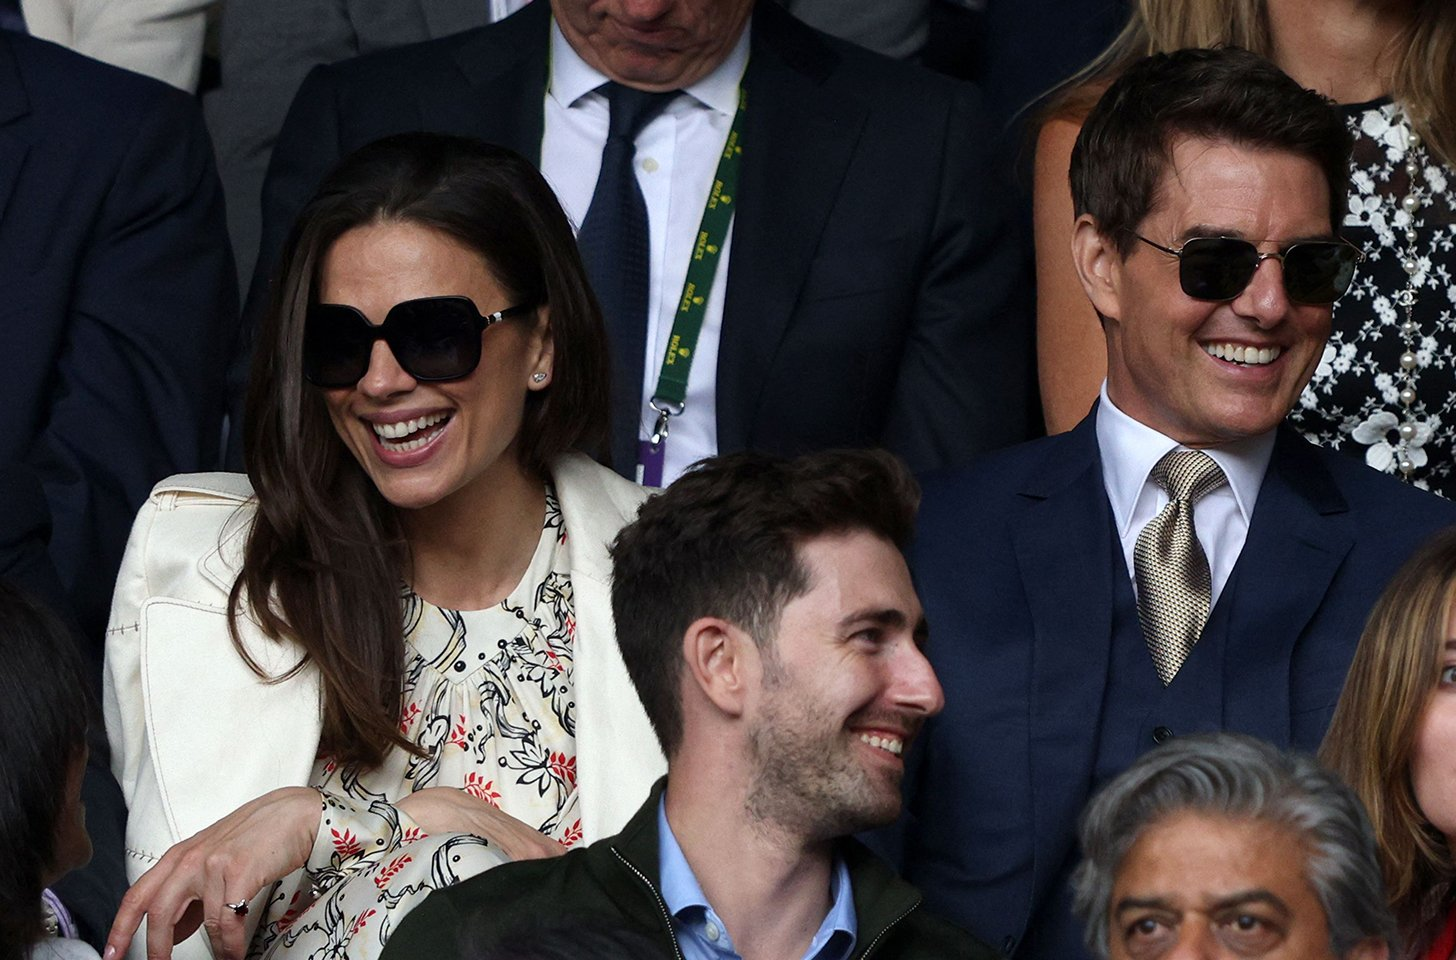 Tom Cruise and his girlfriend Hayley Atwell followed Wimbledon